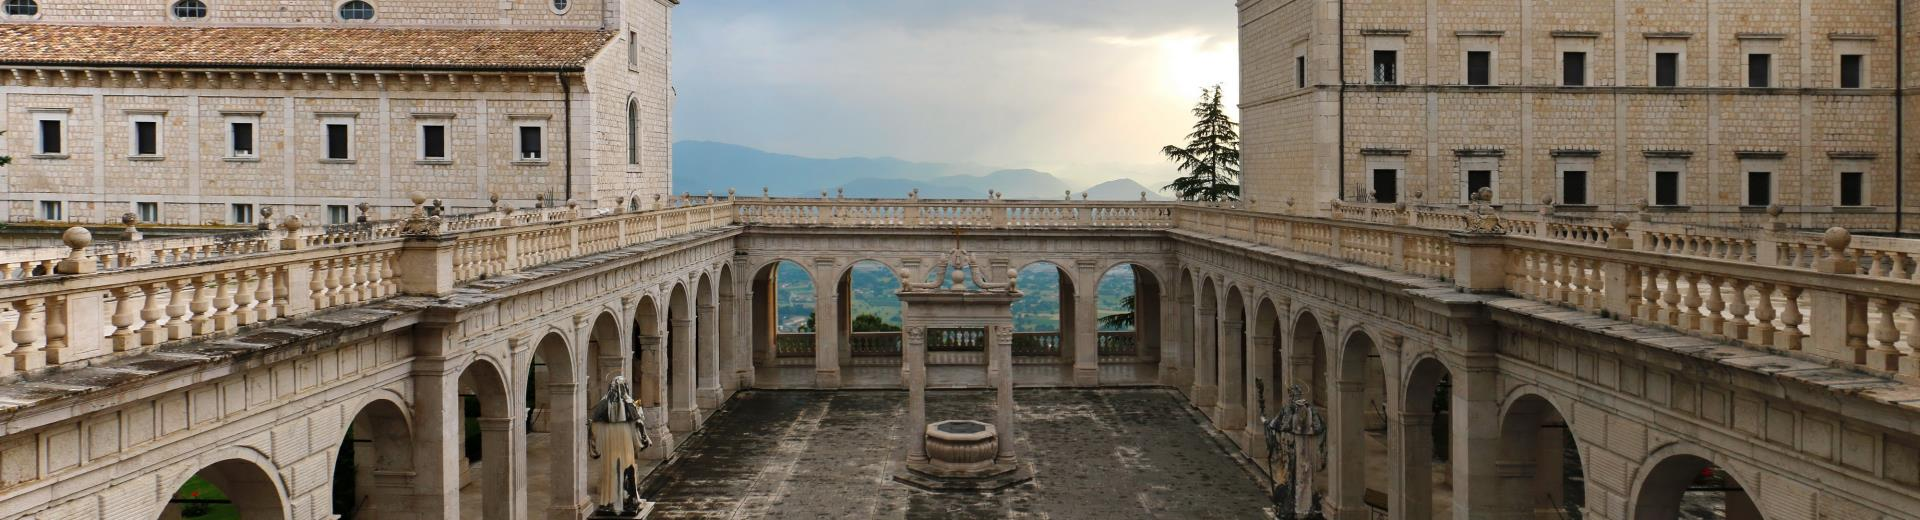 Follow the advice of the best Western Hotel Rocca and discover the beauty of the Abbey of Montecassino